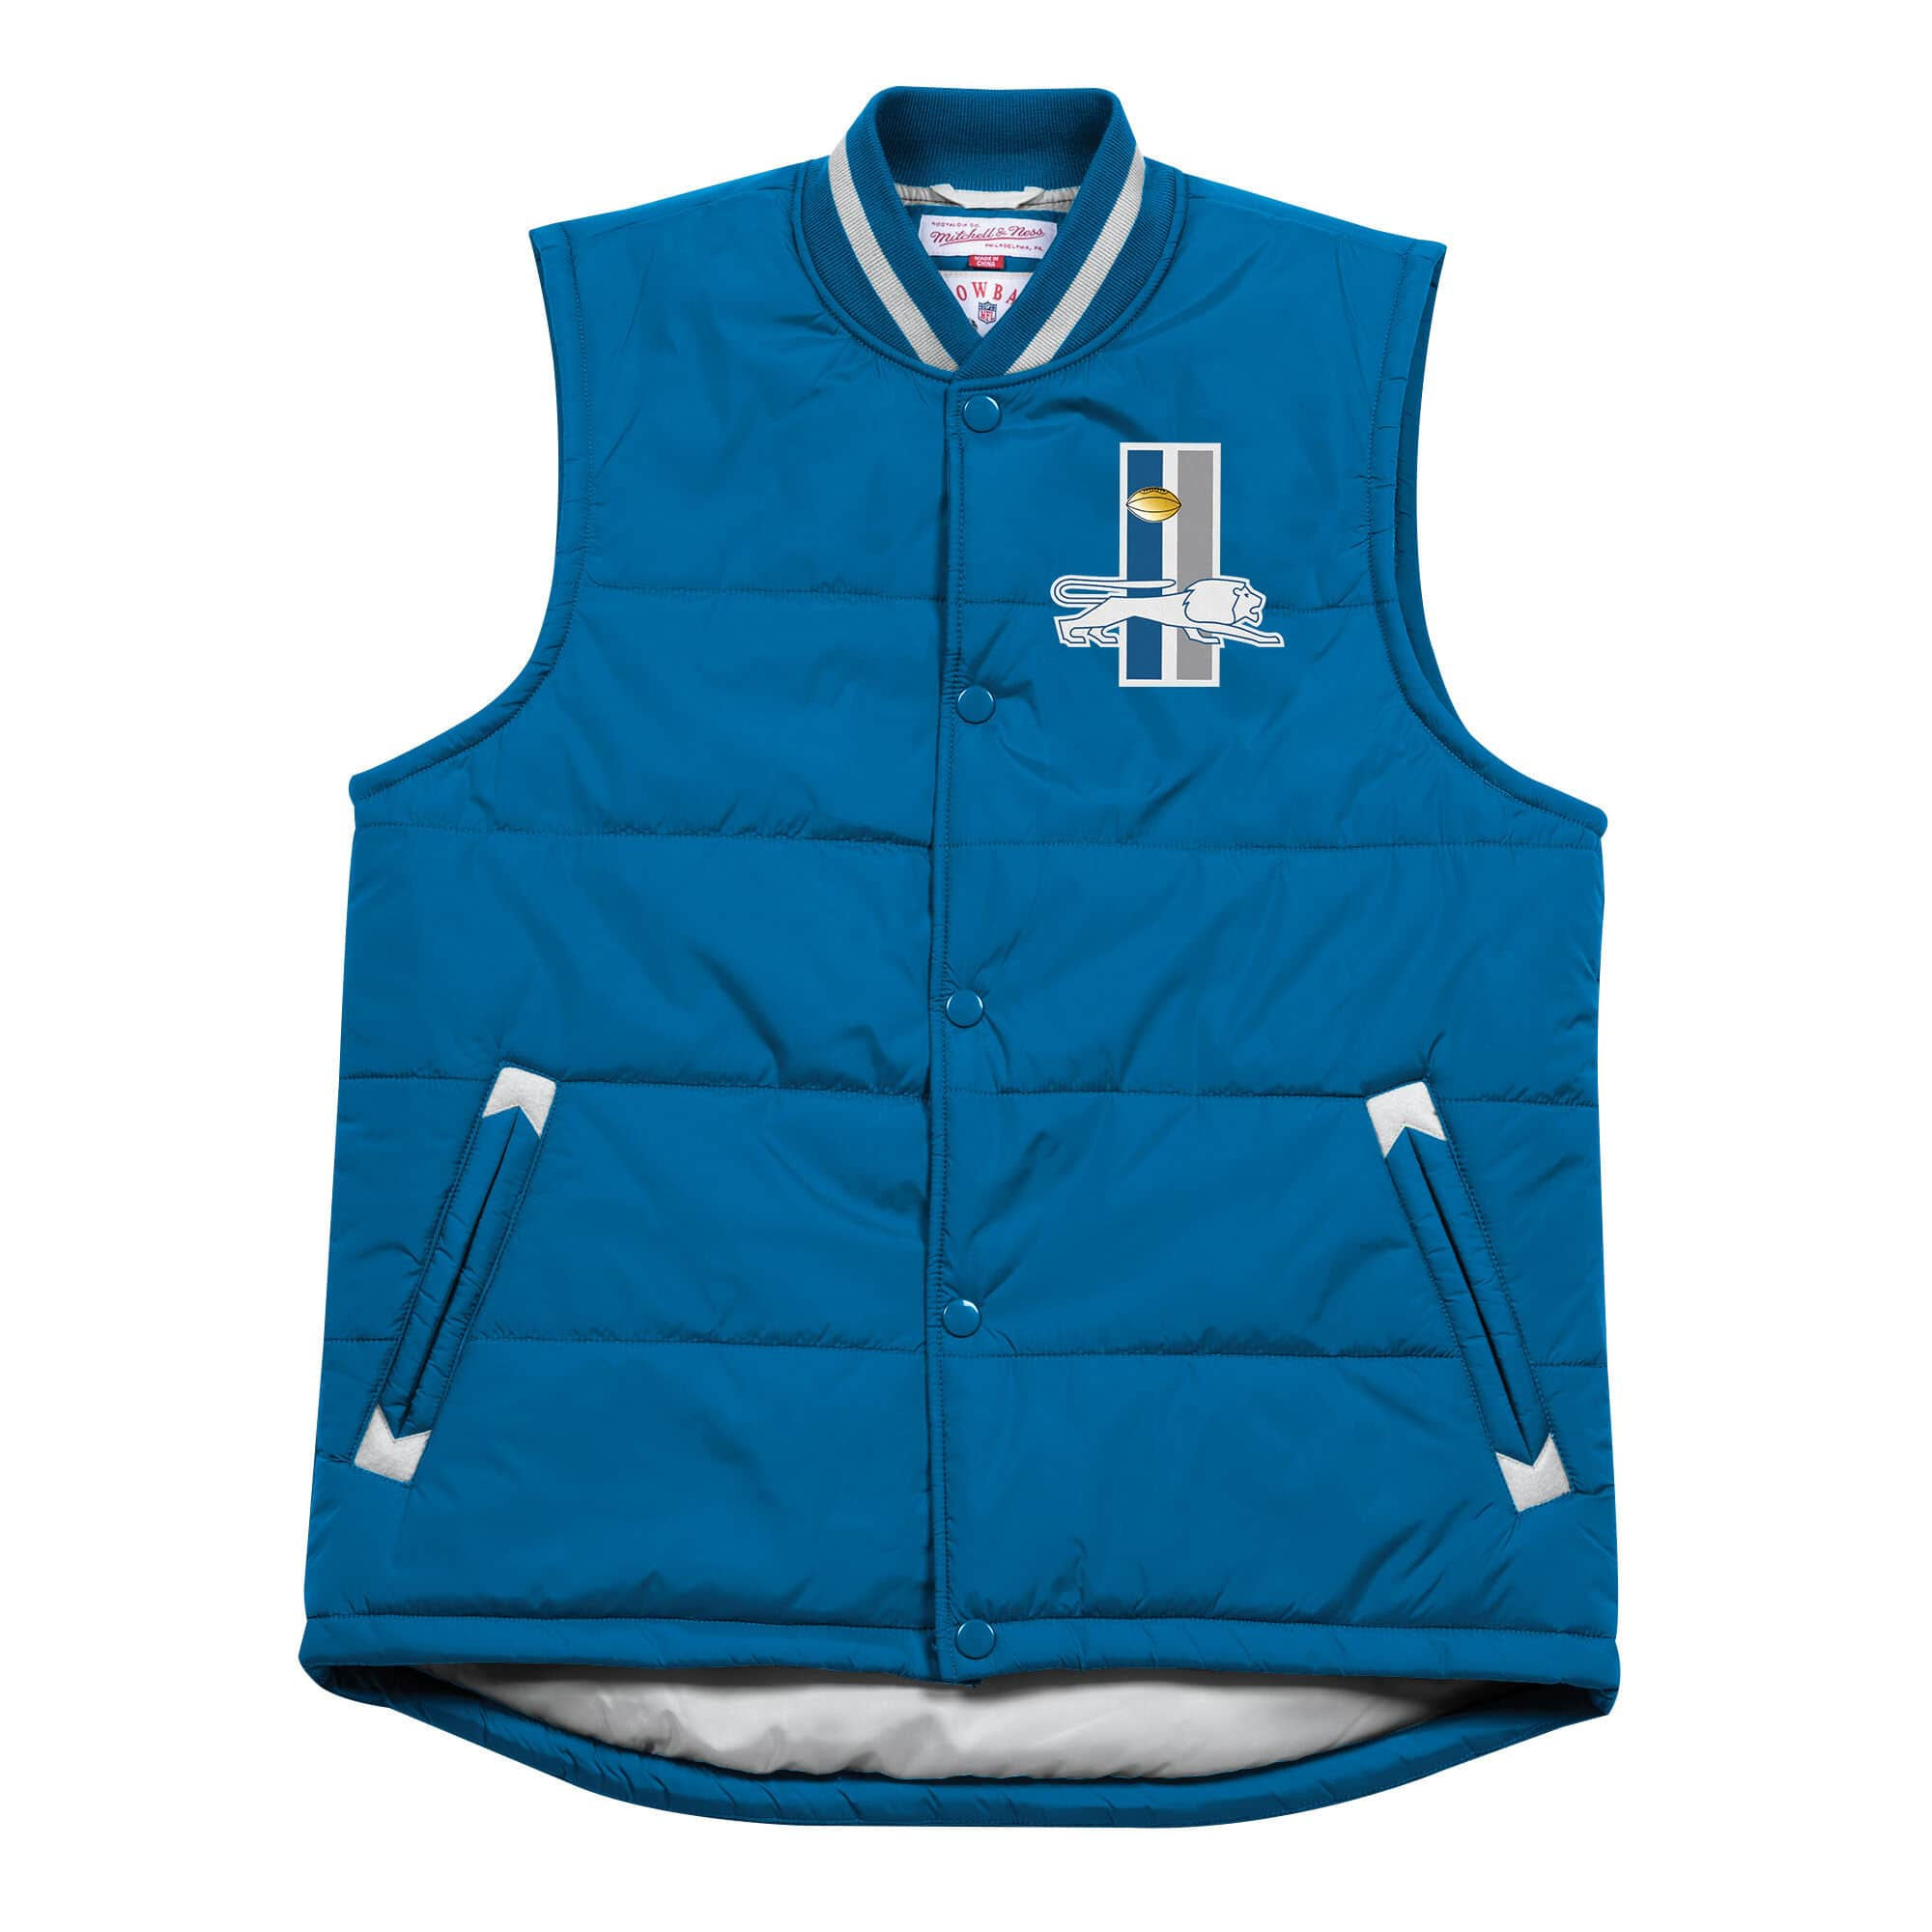 Amazing Catch Vest Detroit Lions